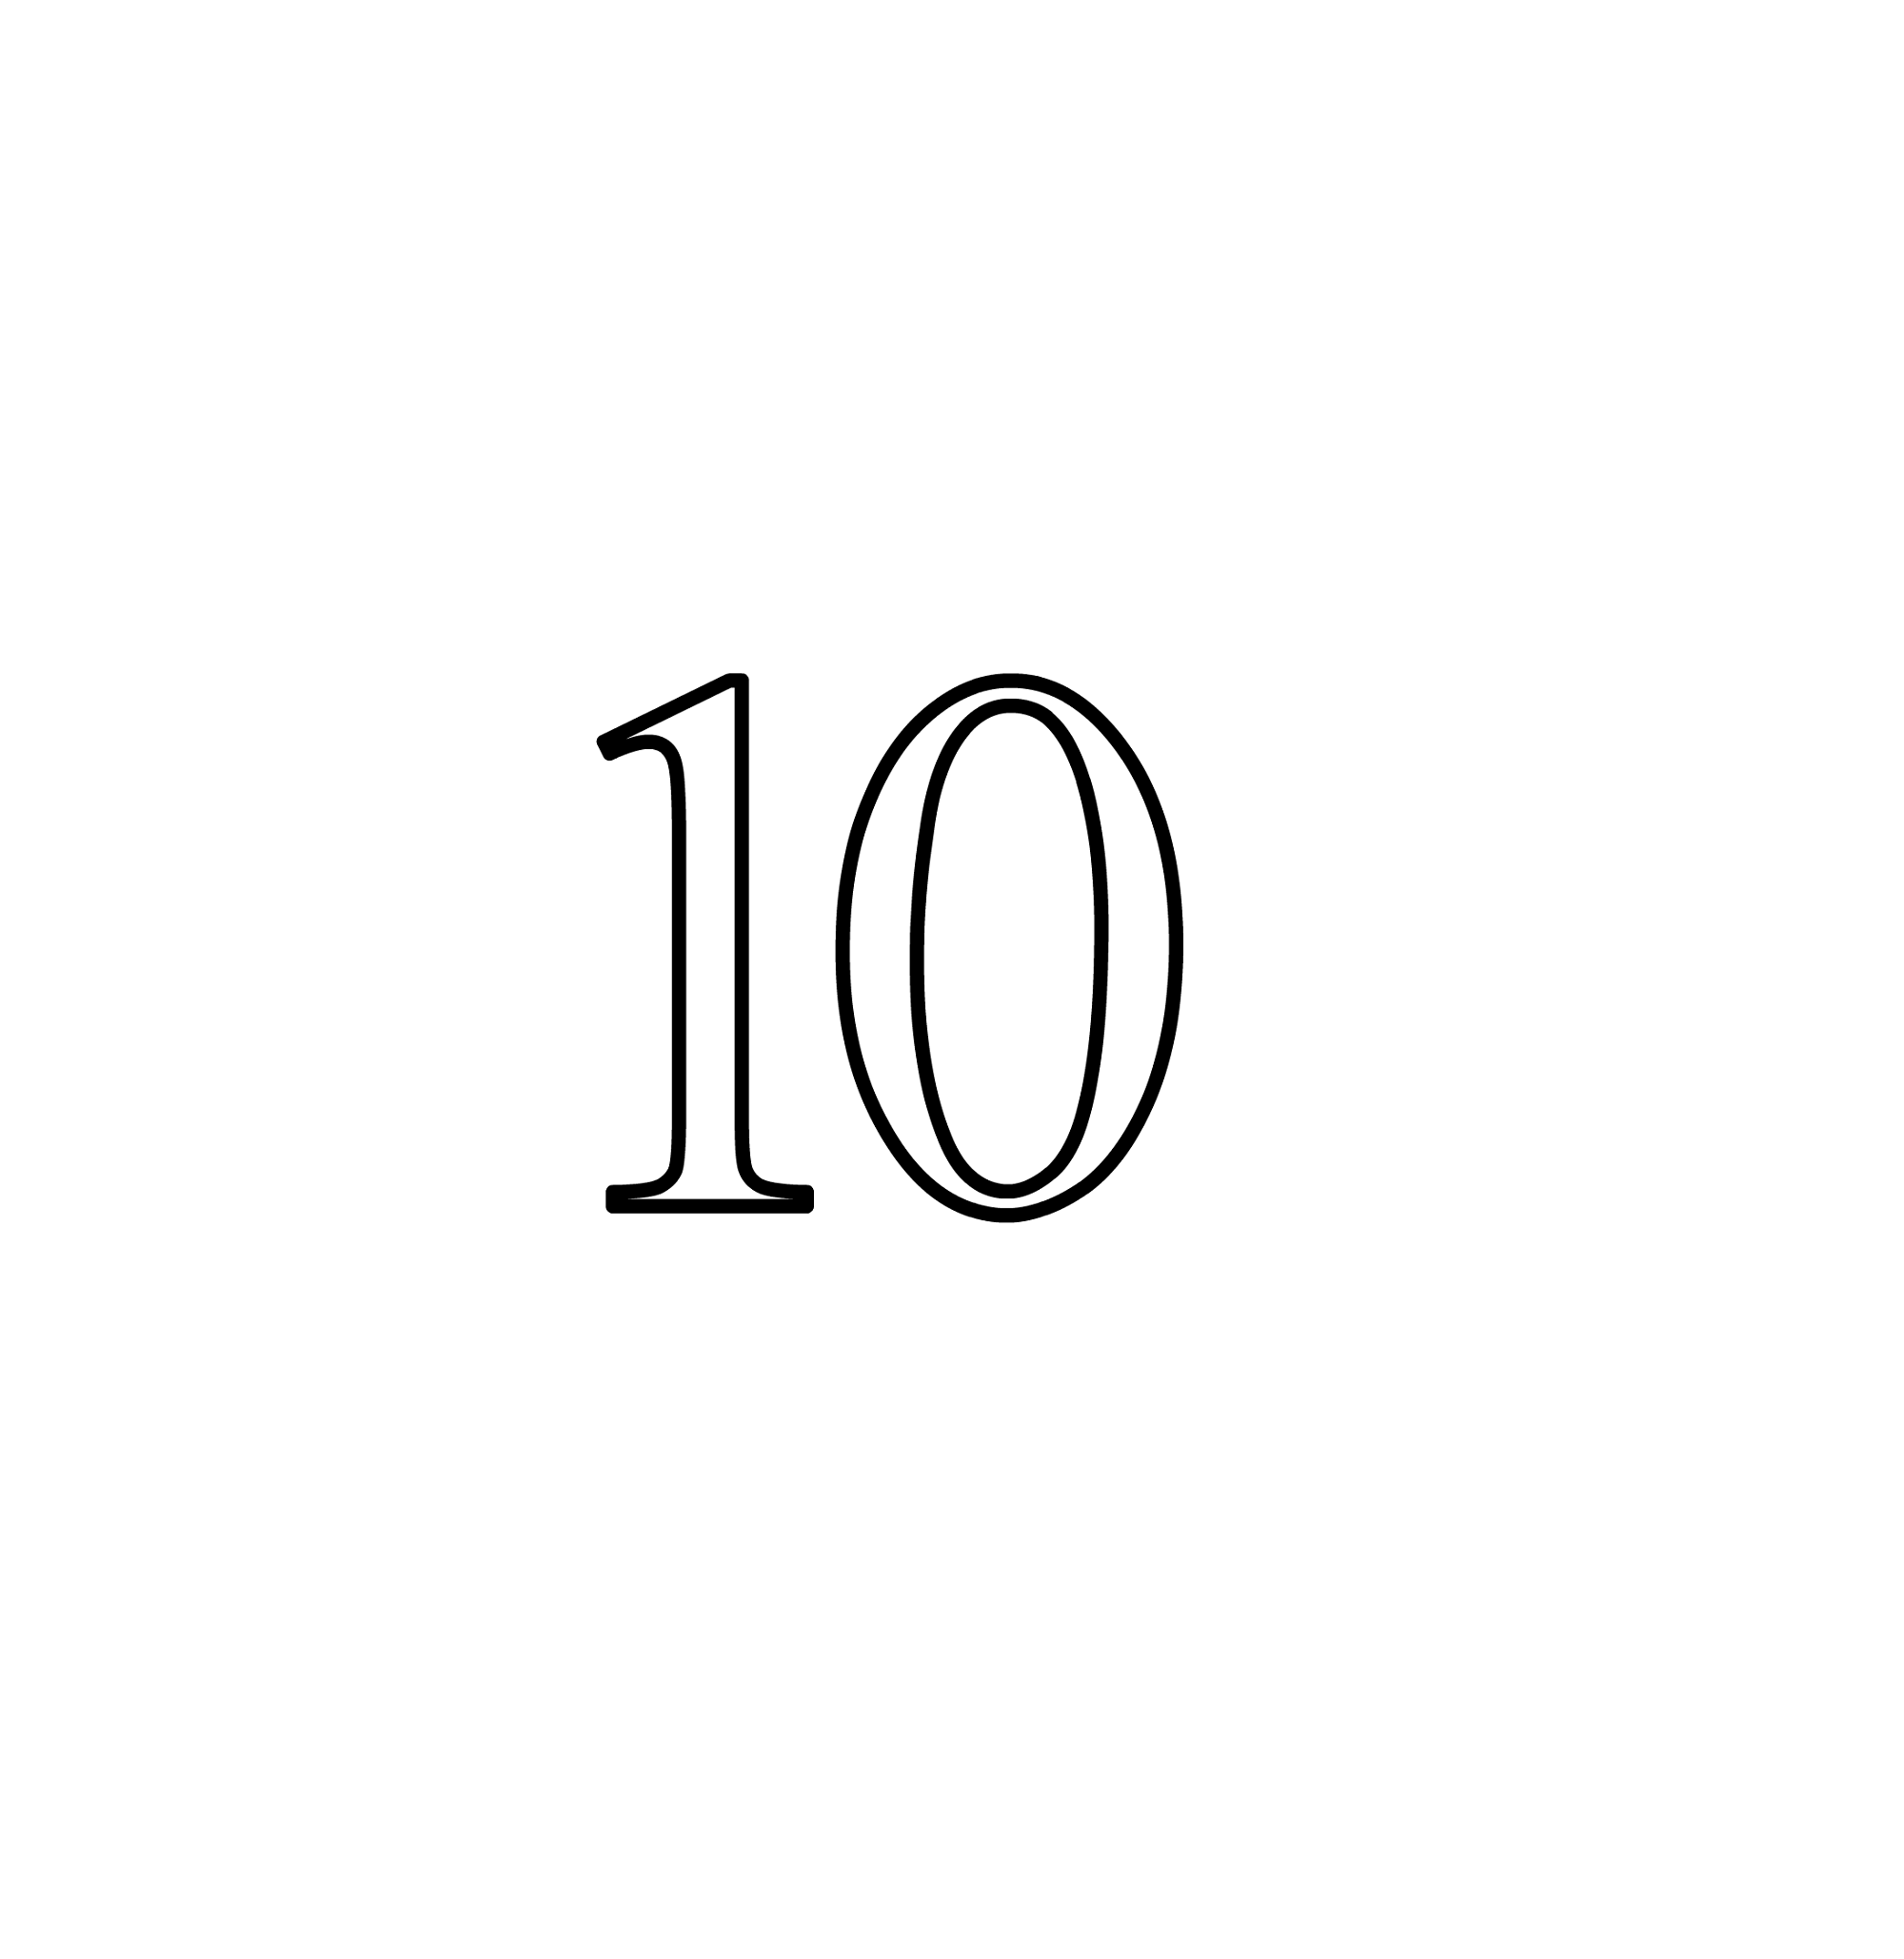 picture of number 10 page